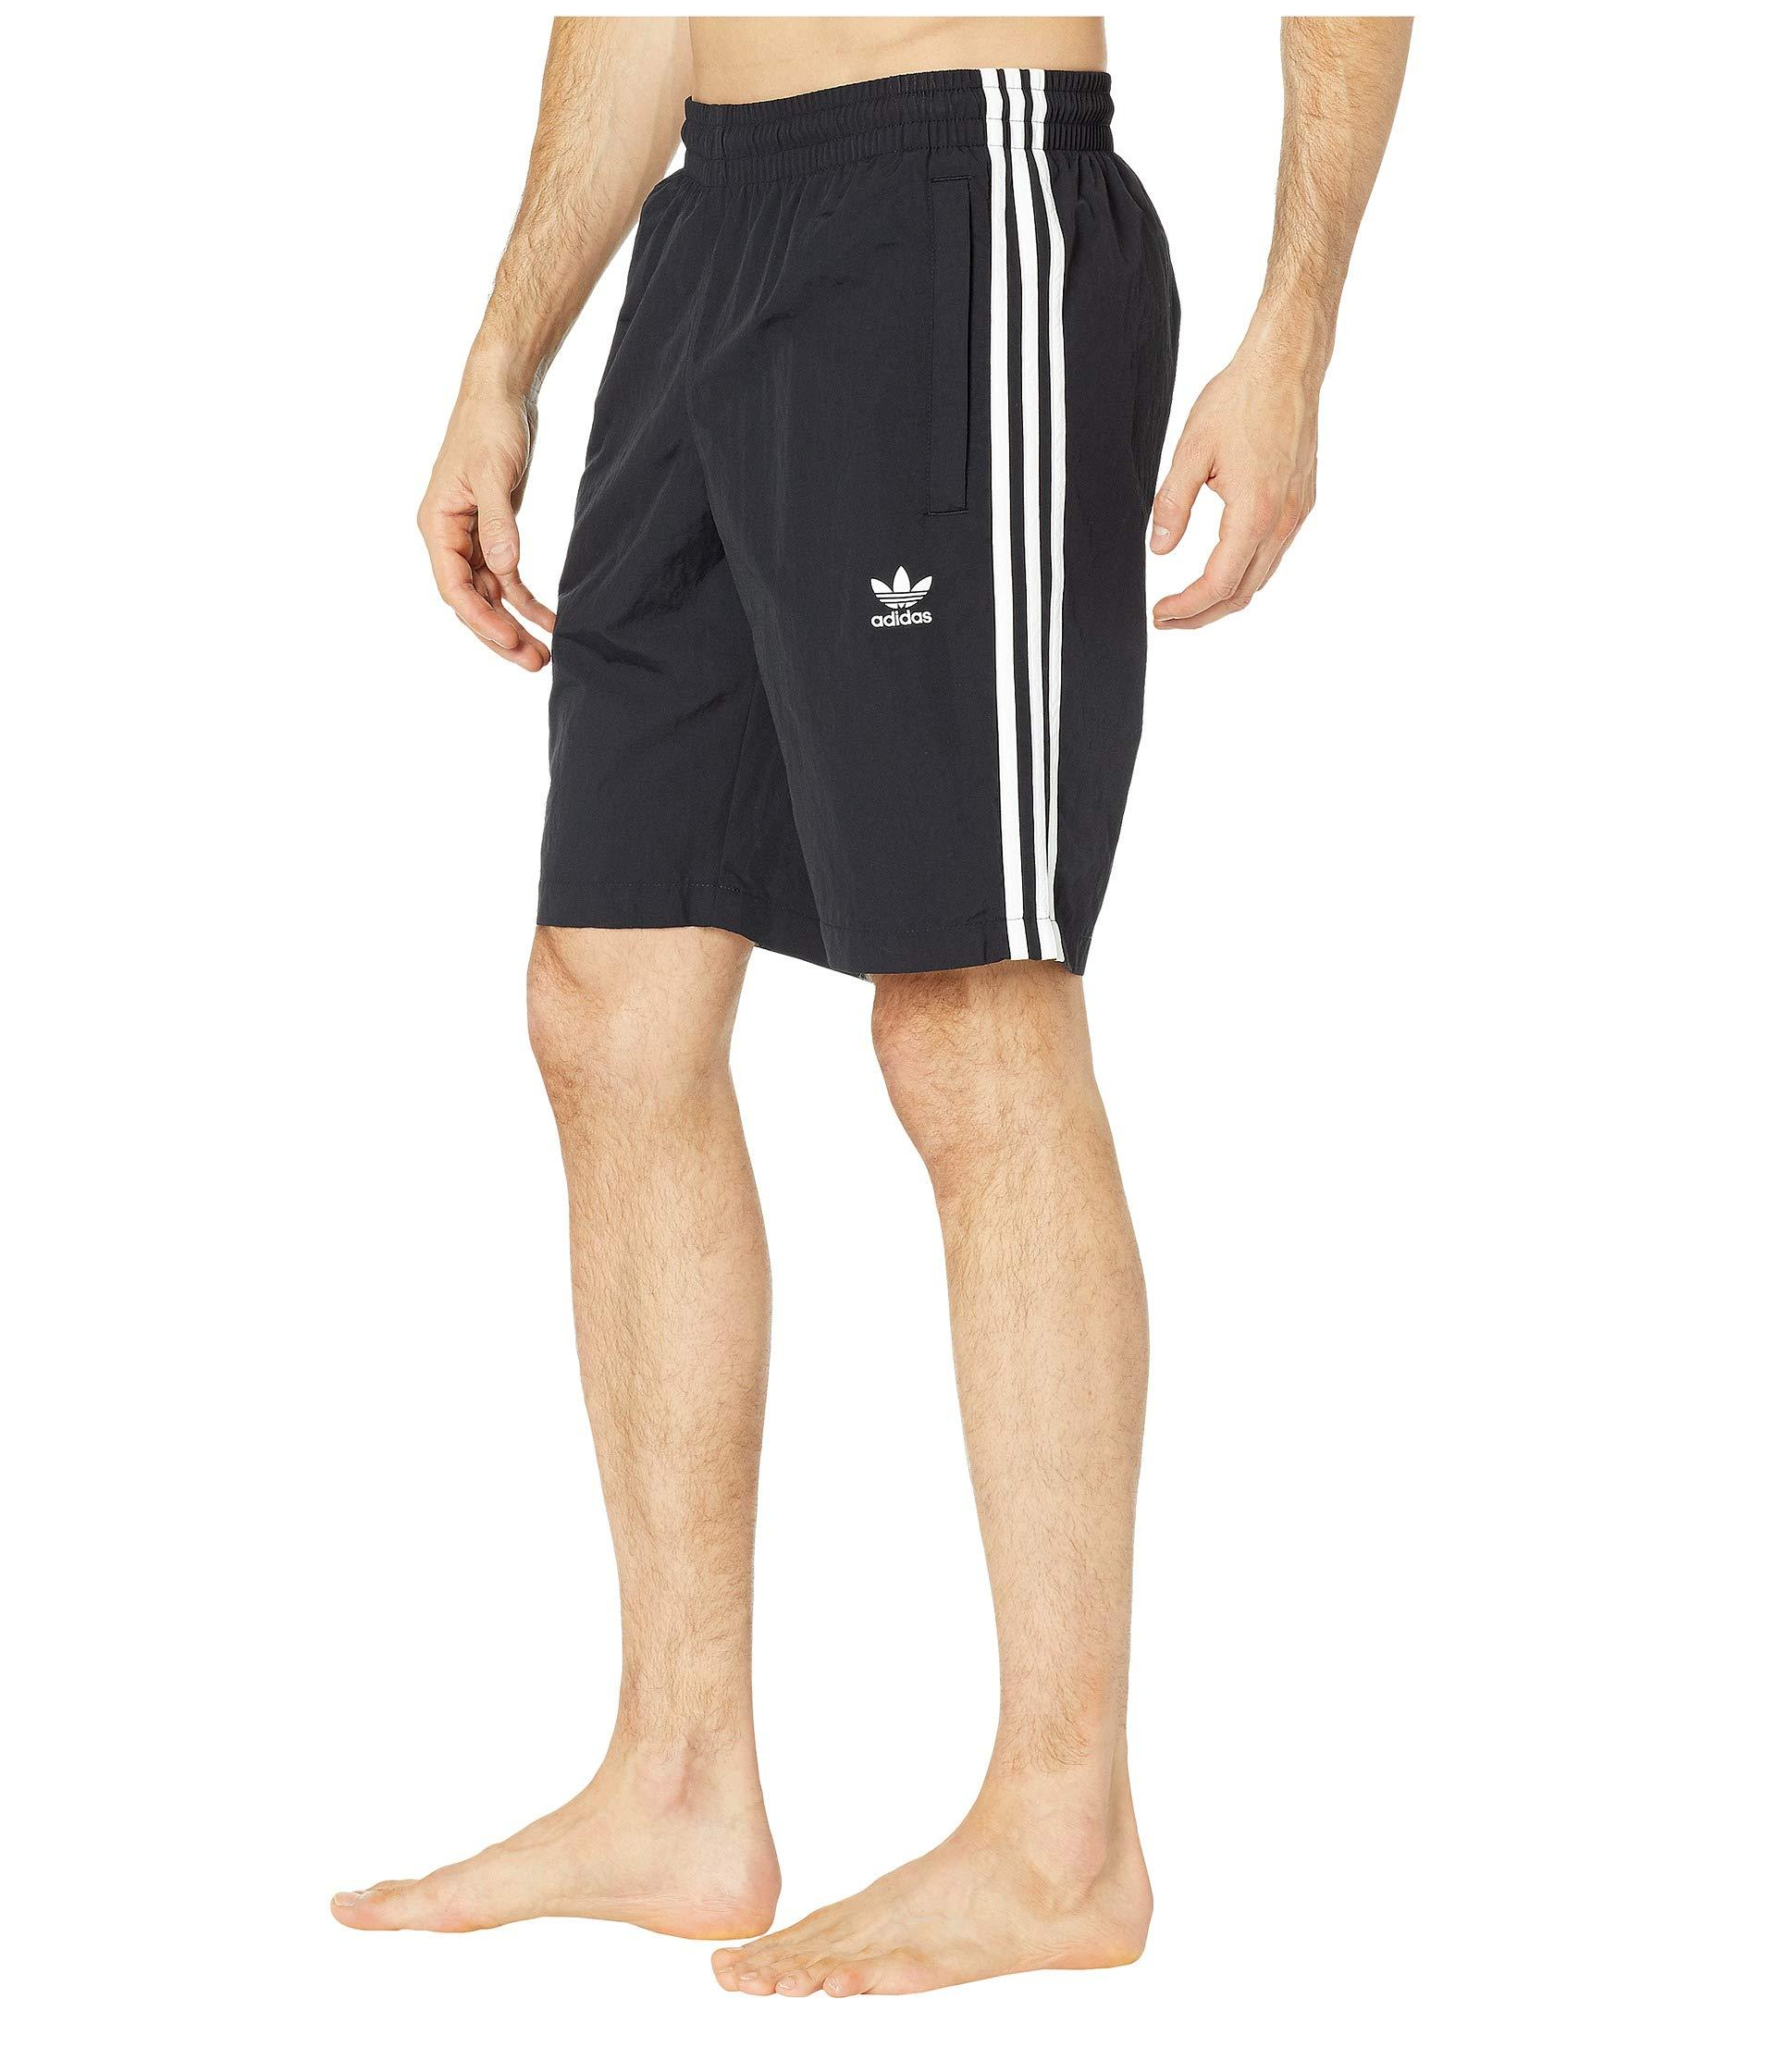 Shortspower Y6gybf7 3 Stripes Originals Redmen's Lyst Swim Adidas wOZn08kNXP